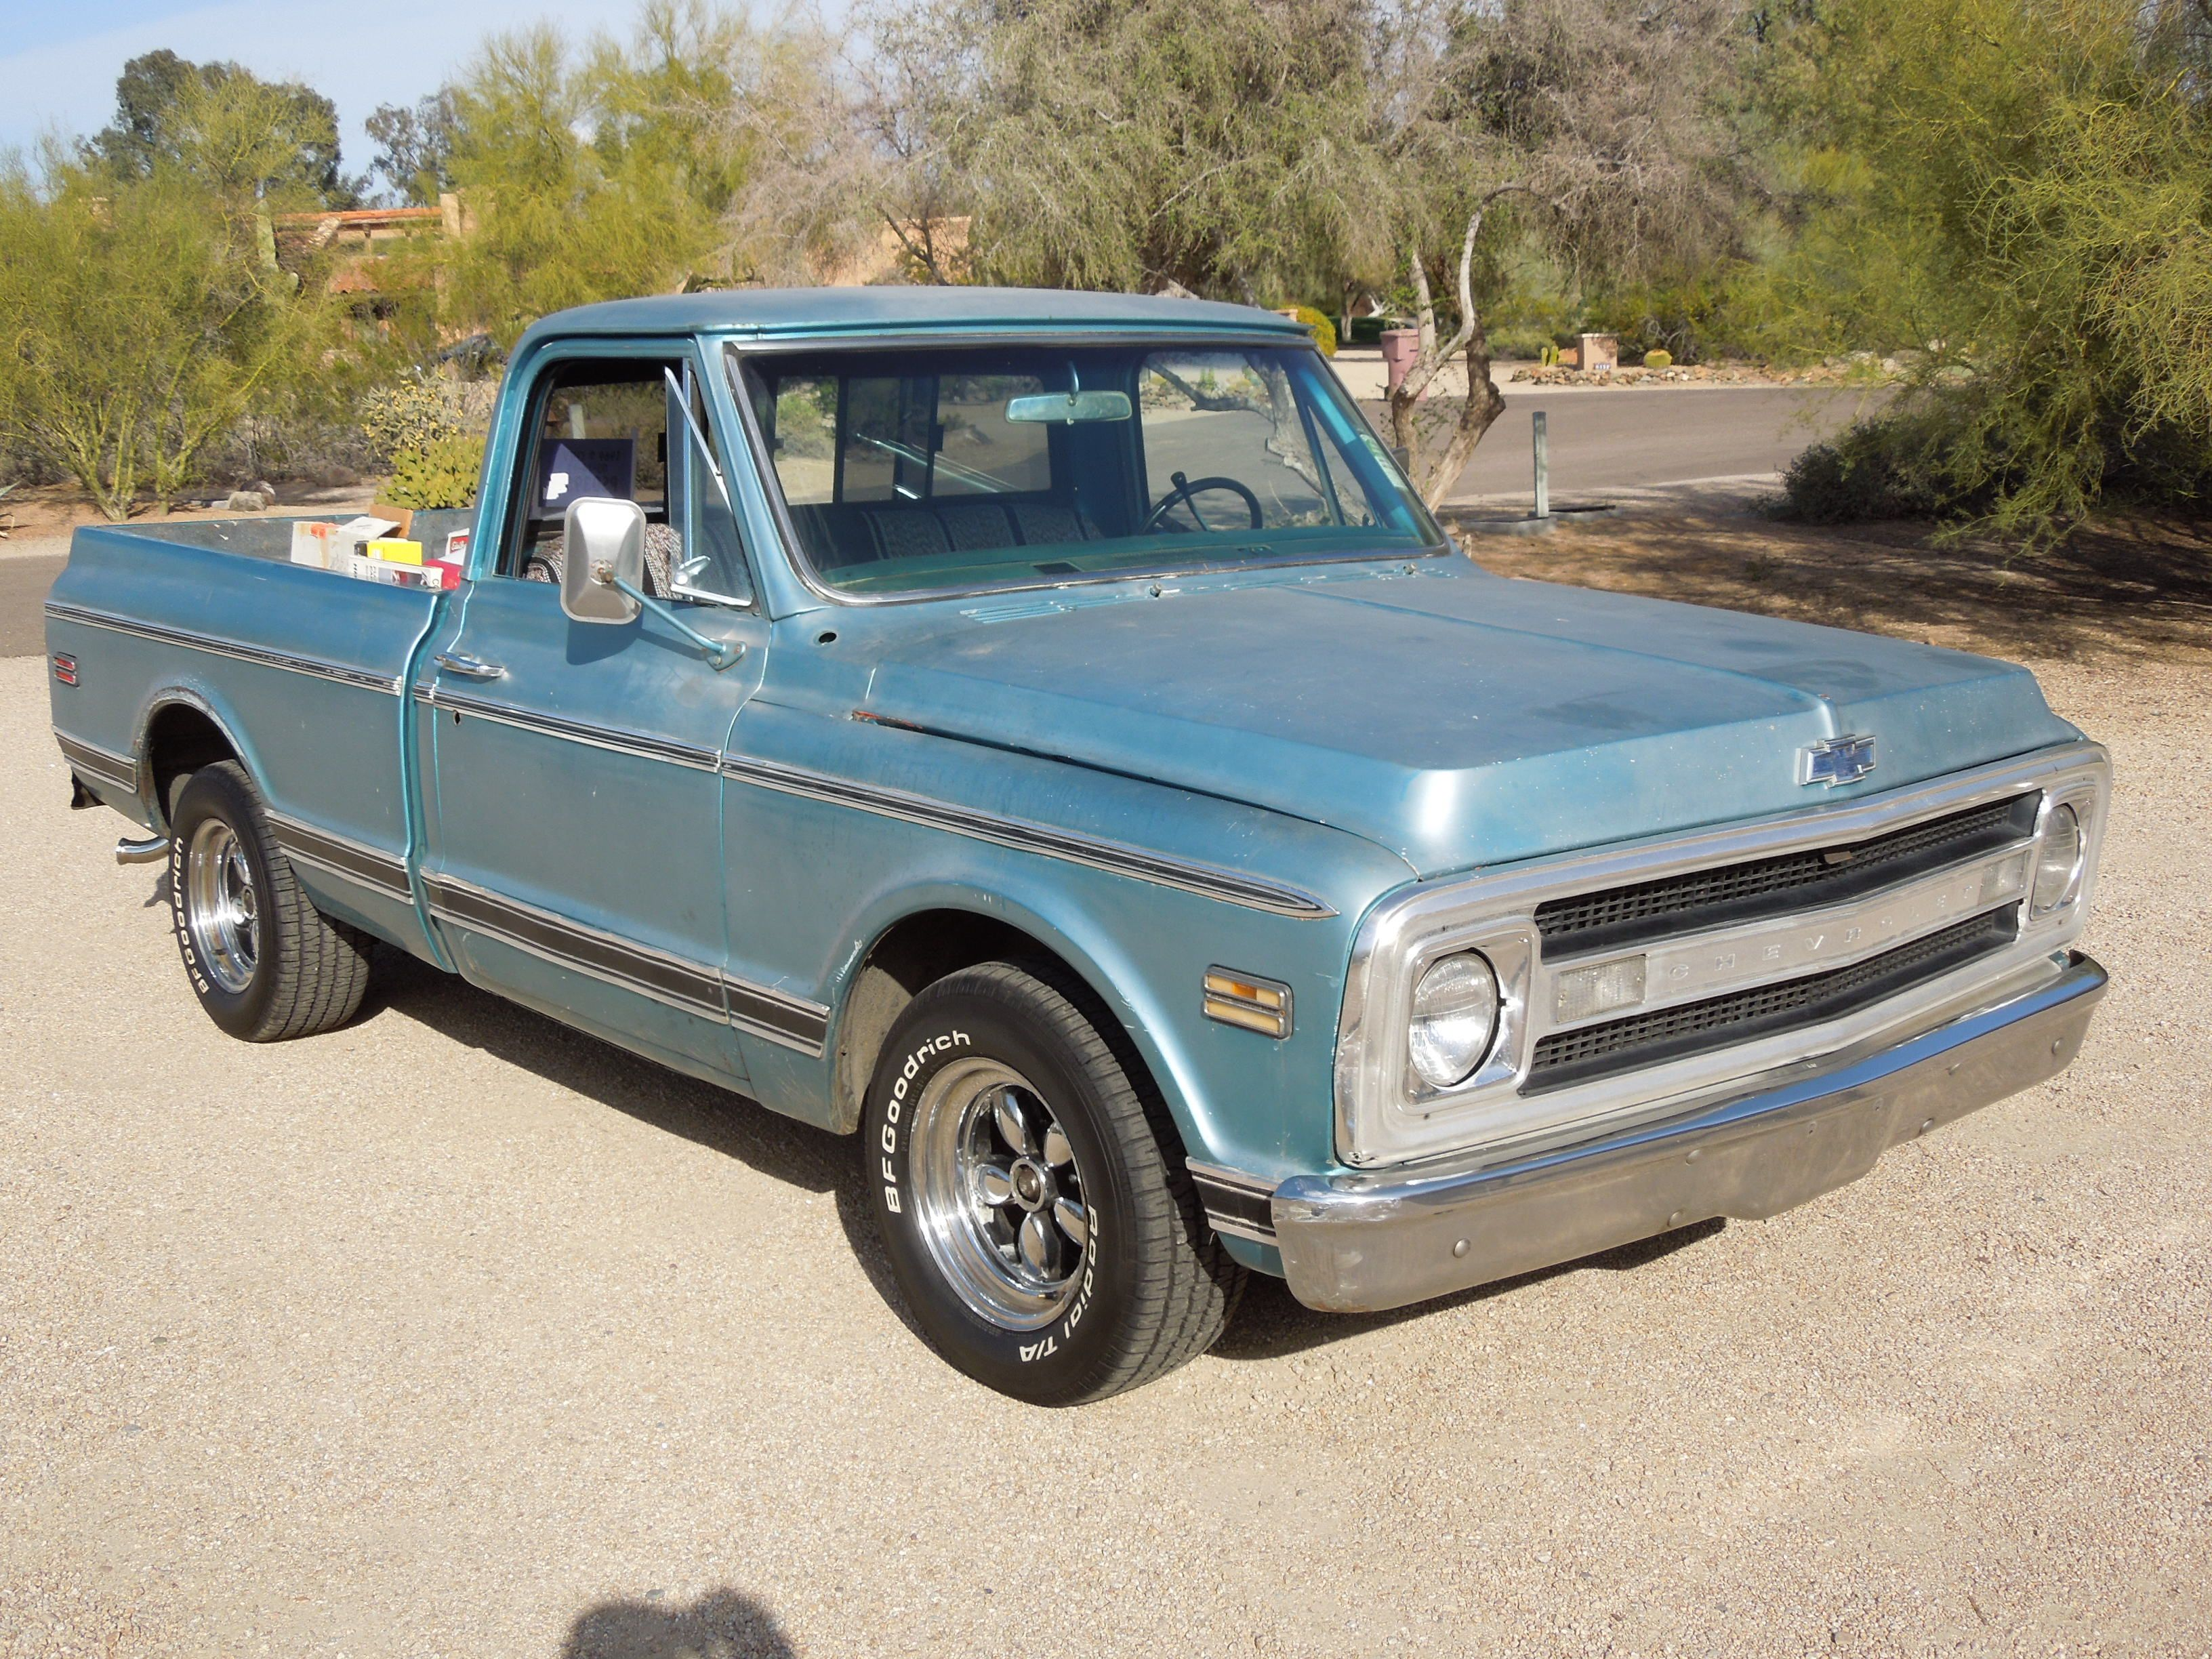 1969 chevrolet c10 1969 chevy c10 shortbed stepside 400sbc th350 father son project 55 59 chevrolet task force trucks pinterest chevy c10